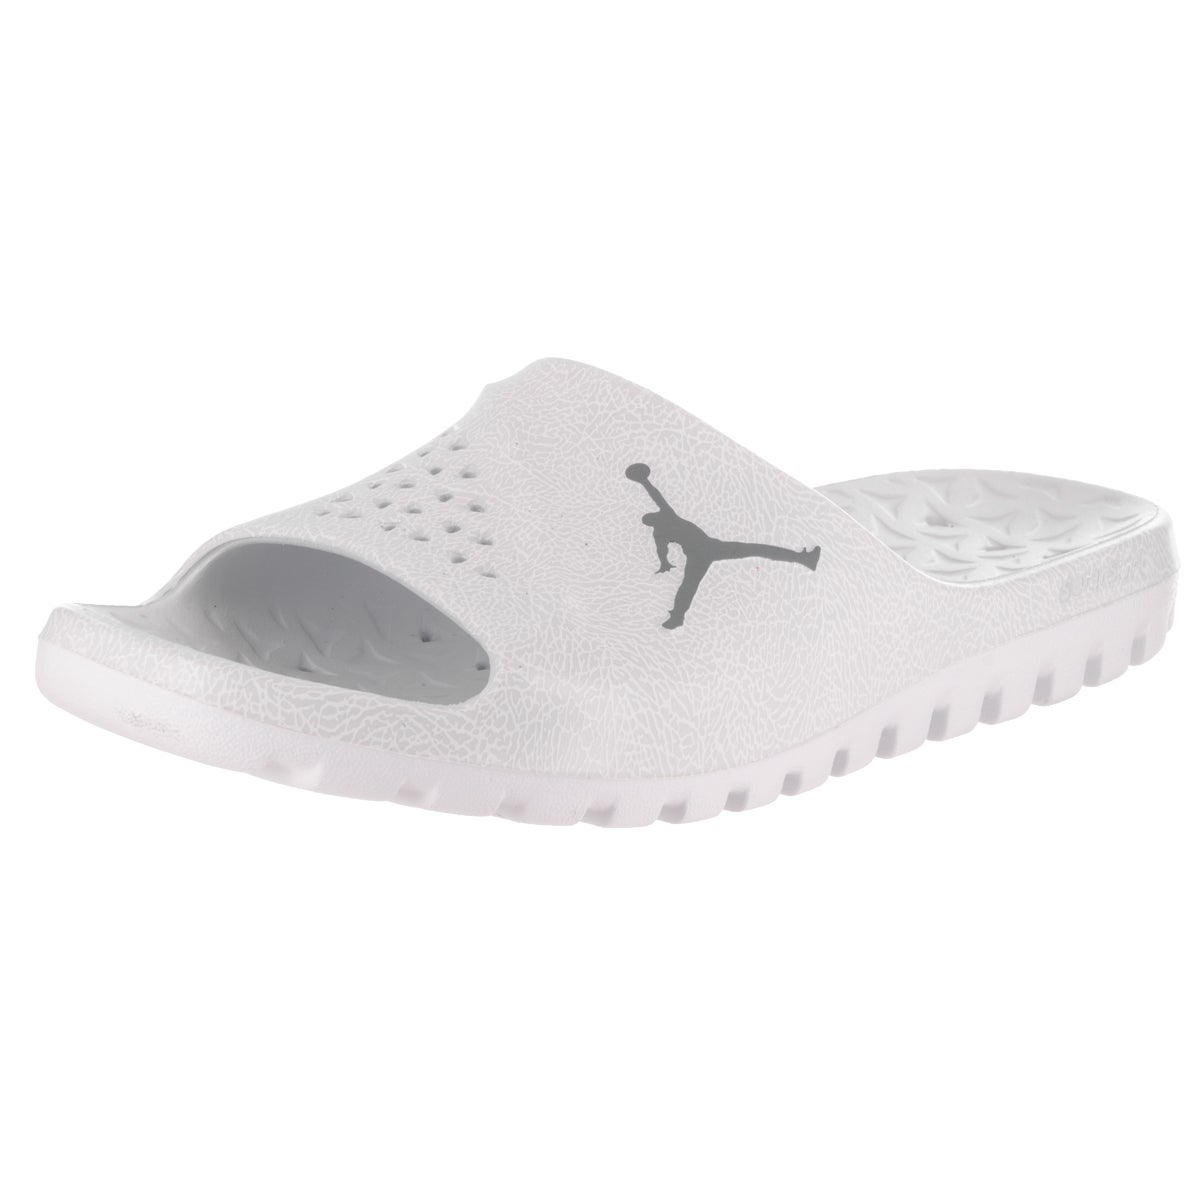 Nike Jordan Men's White Super.Fly Team Slide 2 Graphic Sa...